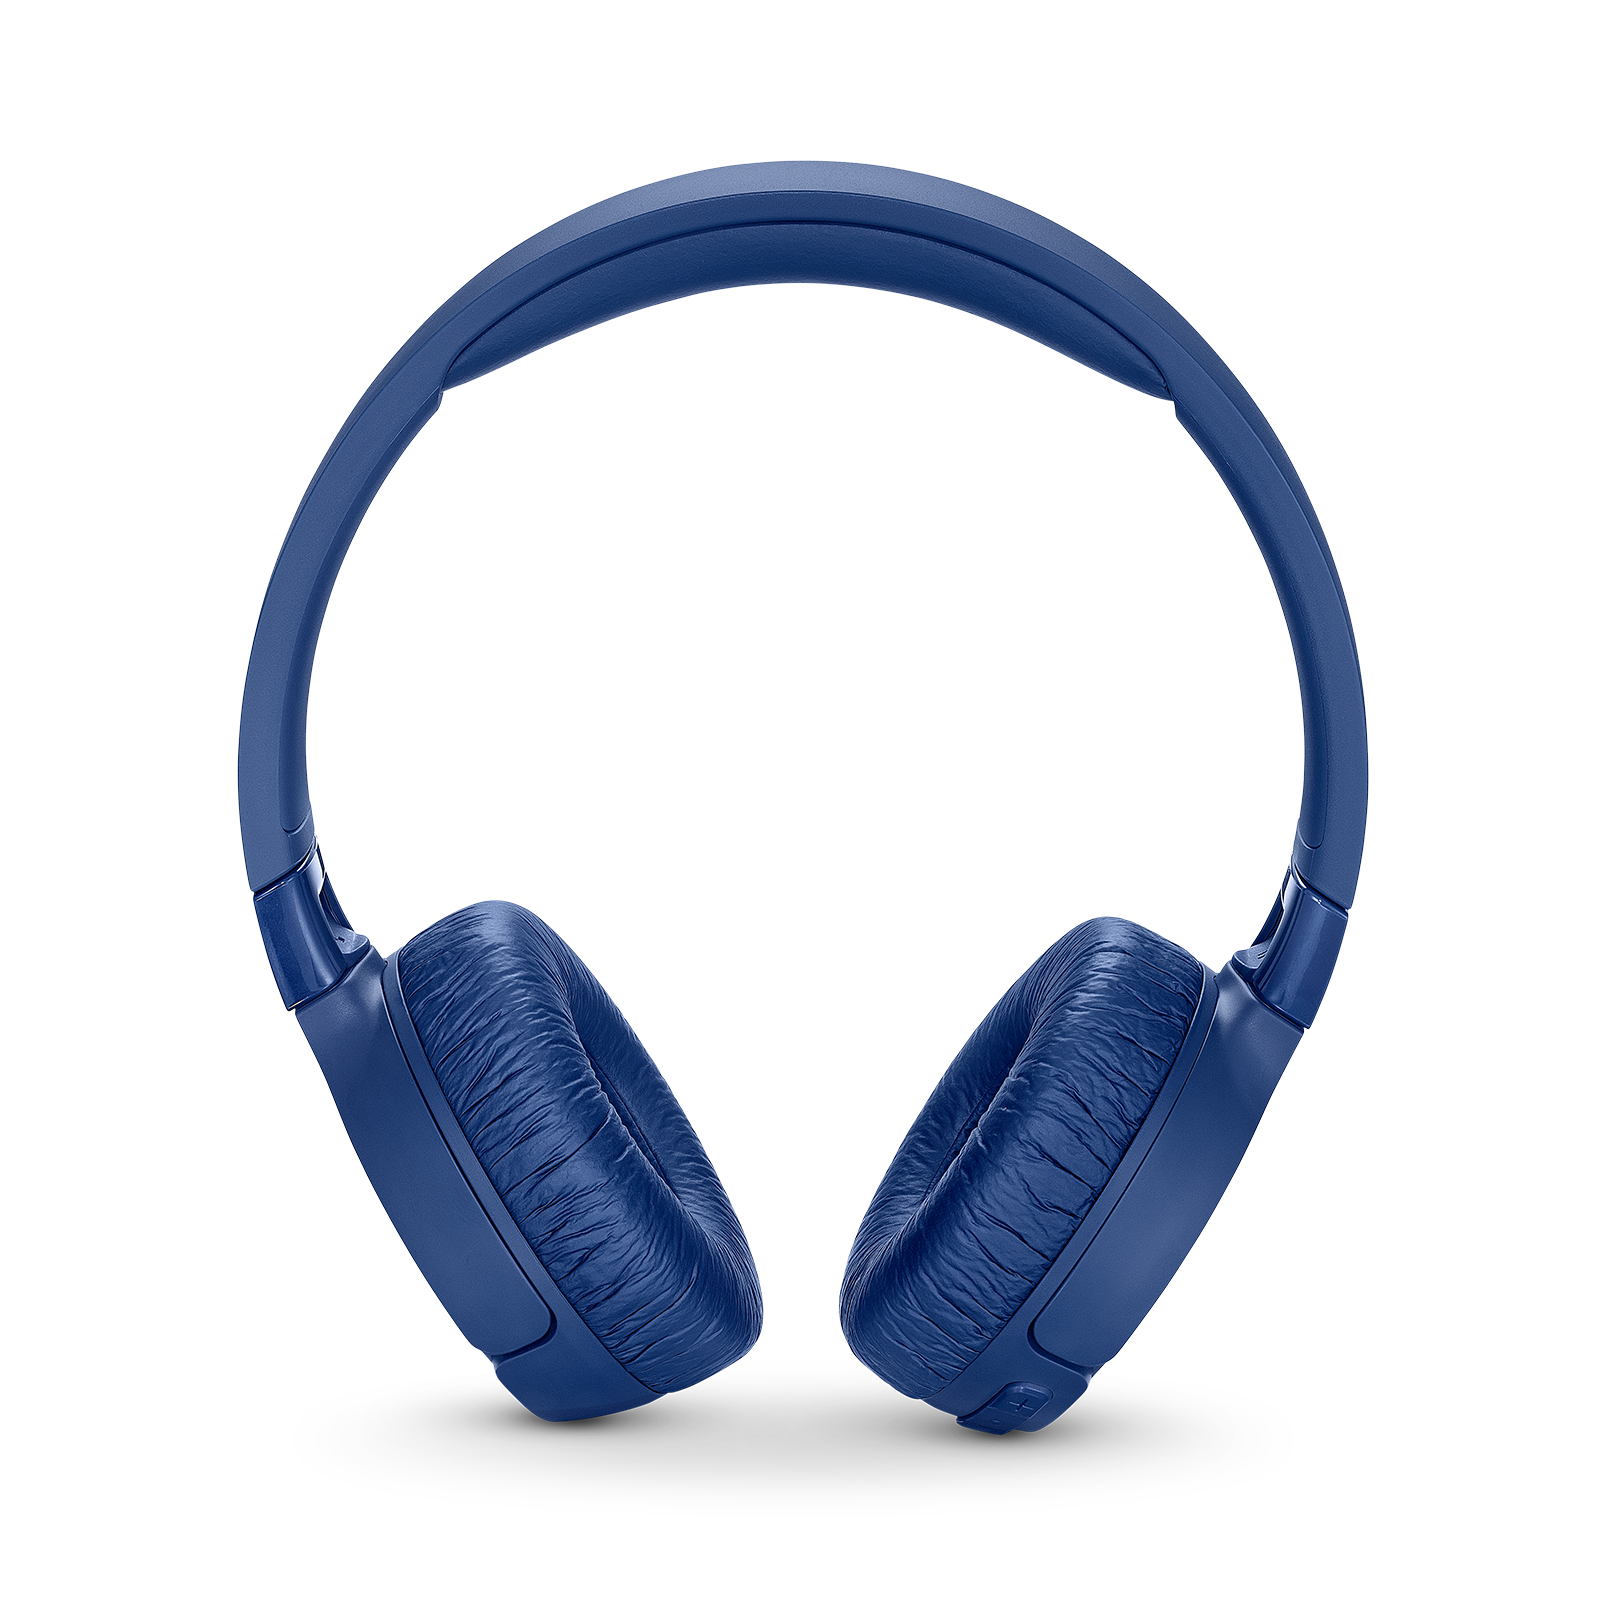 7c67b00f2f9 JBL TUNE 600BTNC | Wireless, on-ear, active noise-cancelling headphones.